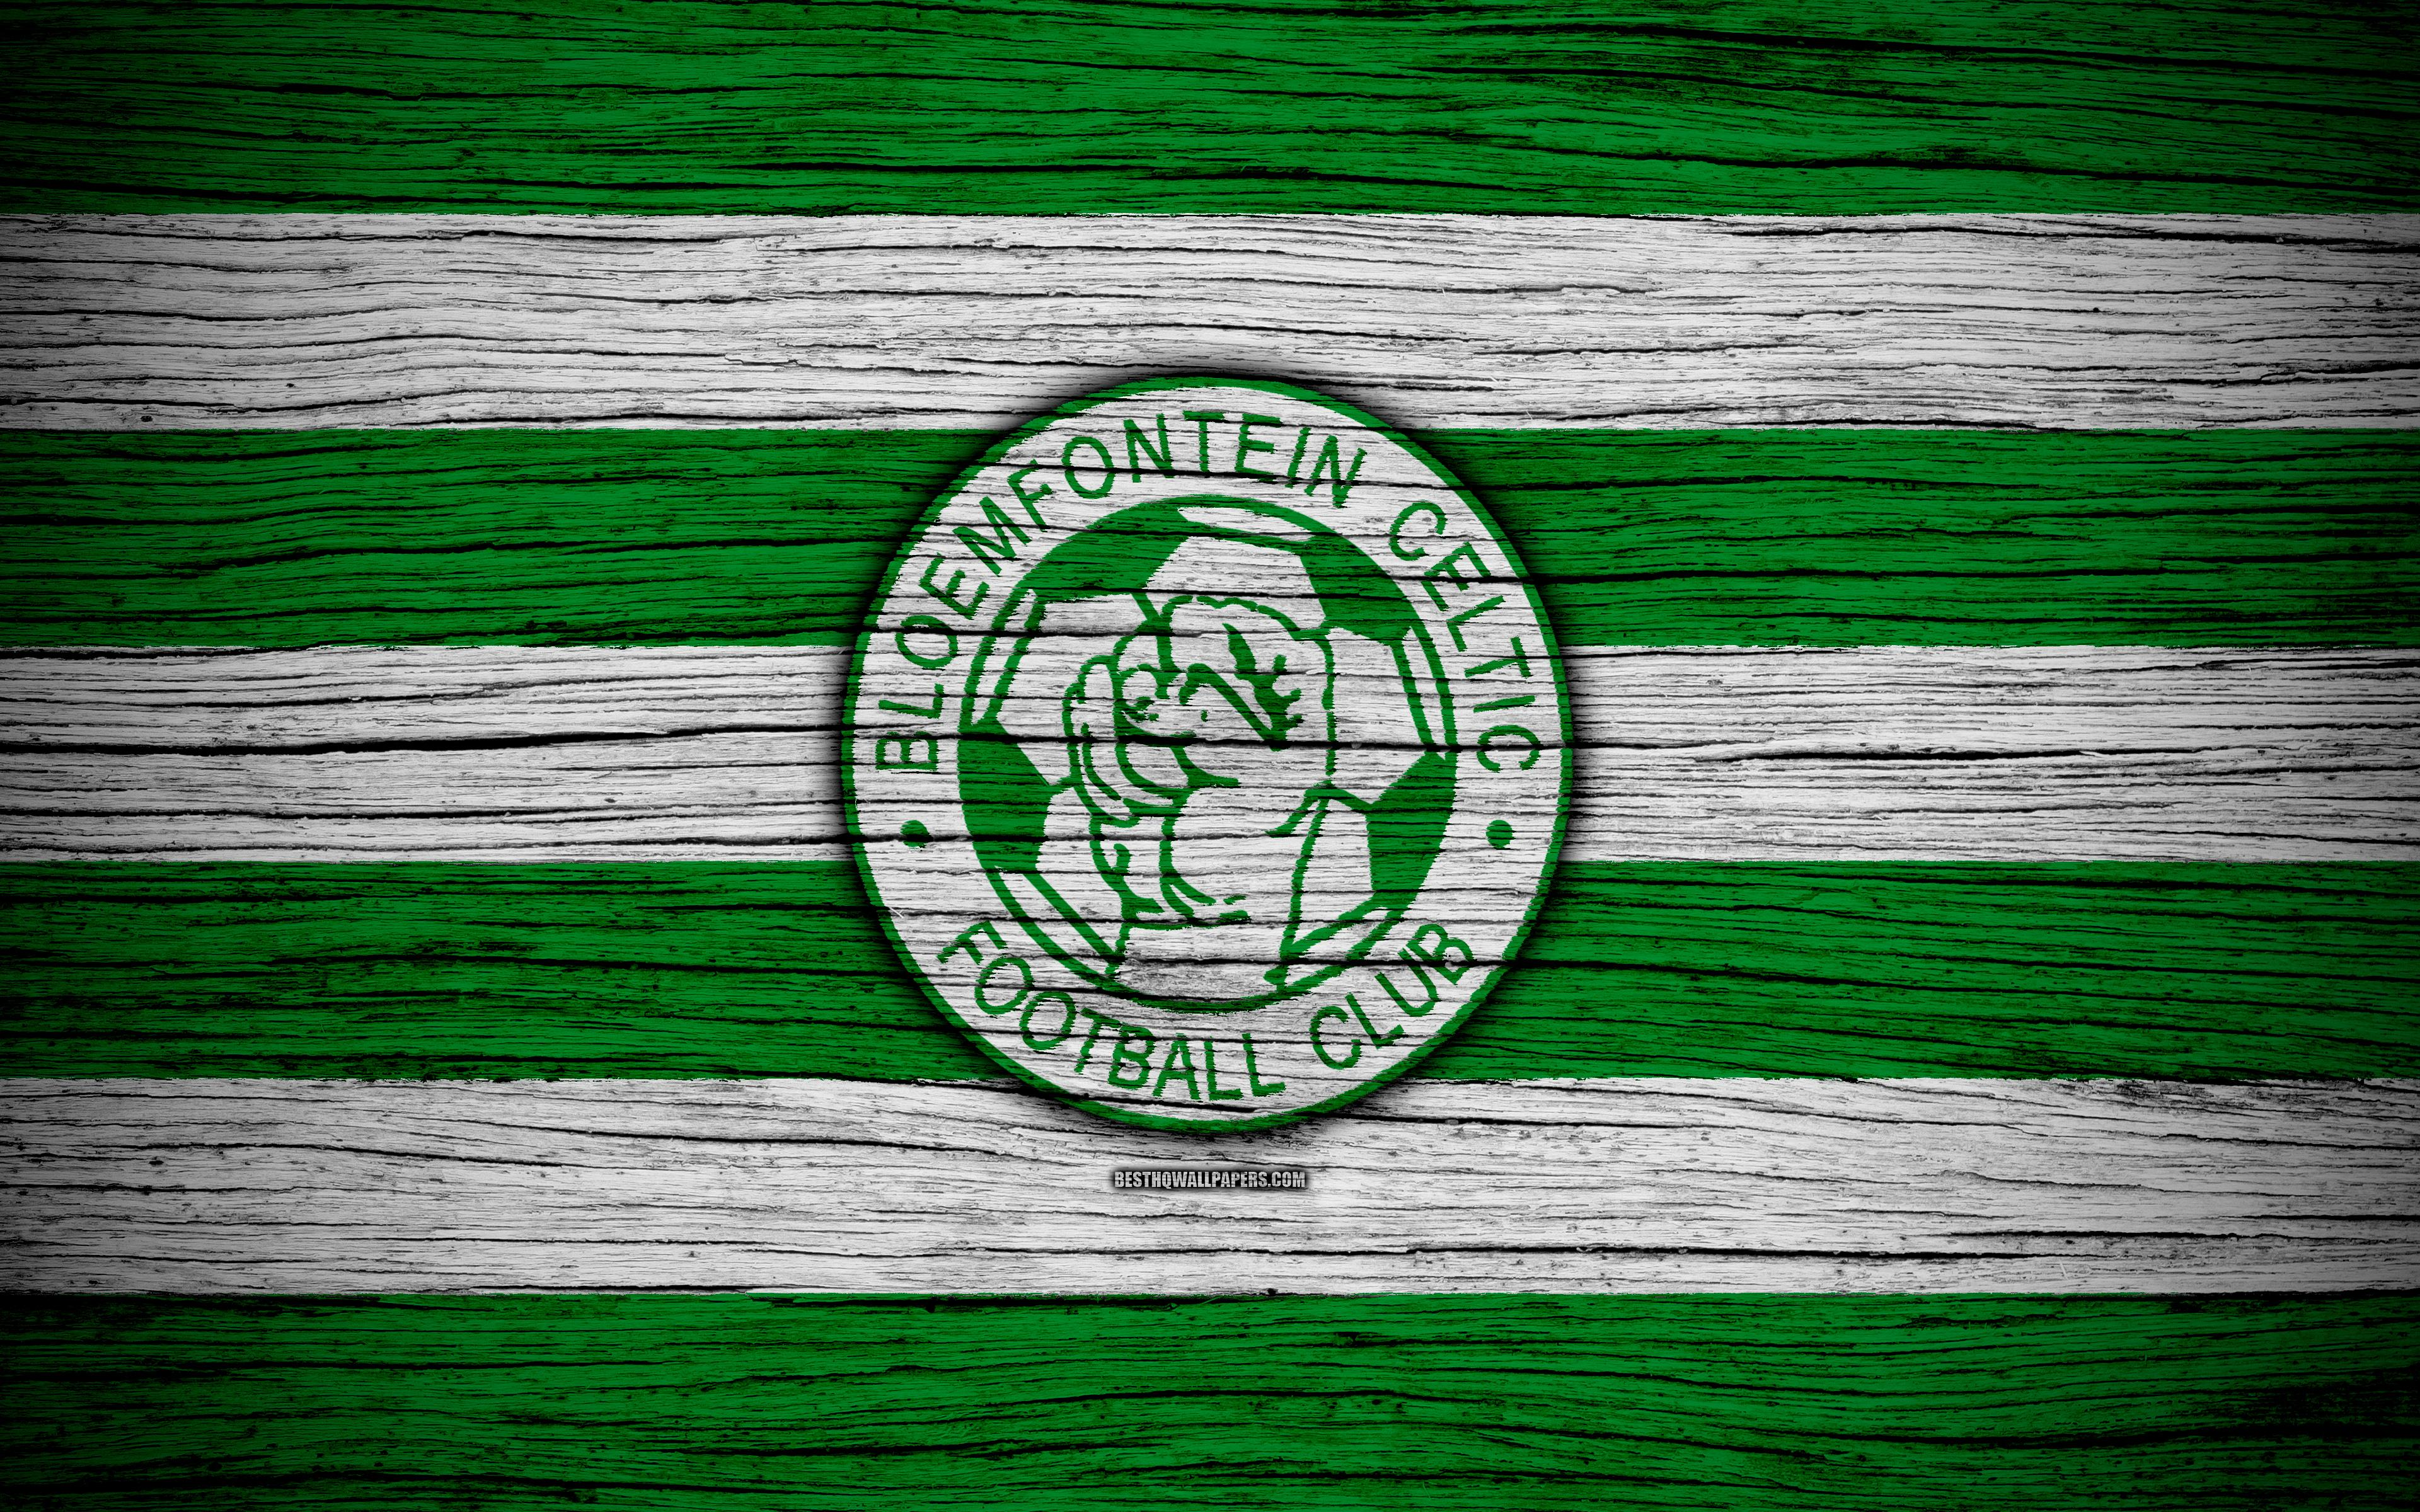 Download wallpapers FC Bloemfontein Celtic, 4k, wooden texture